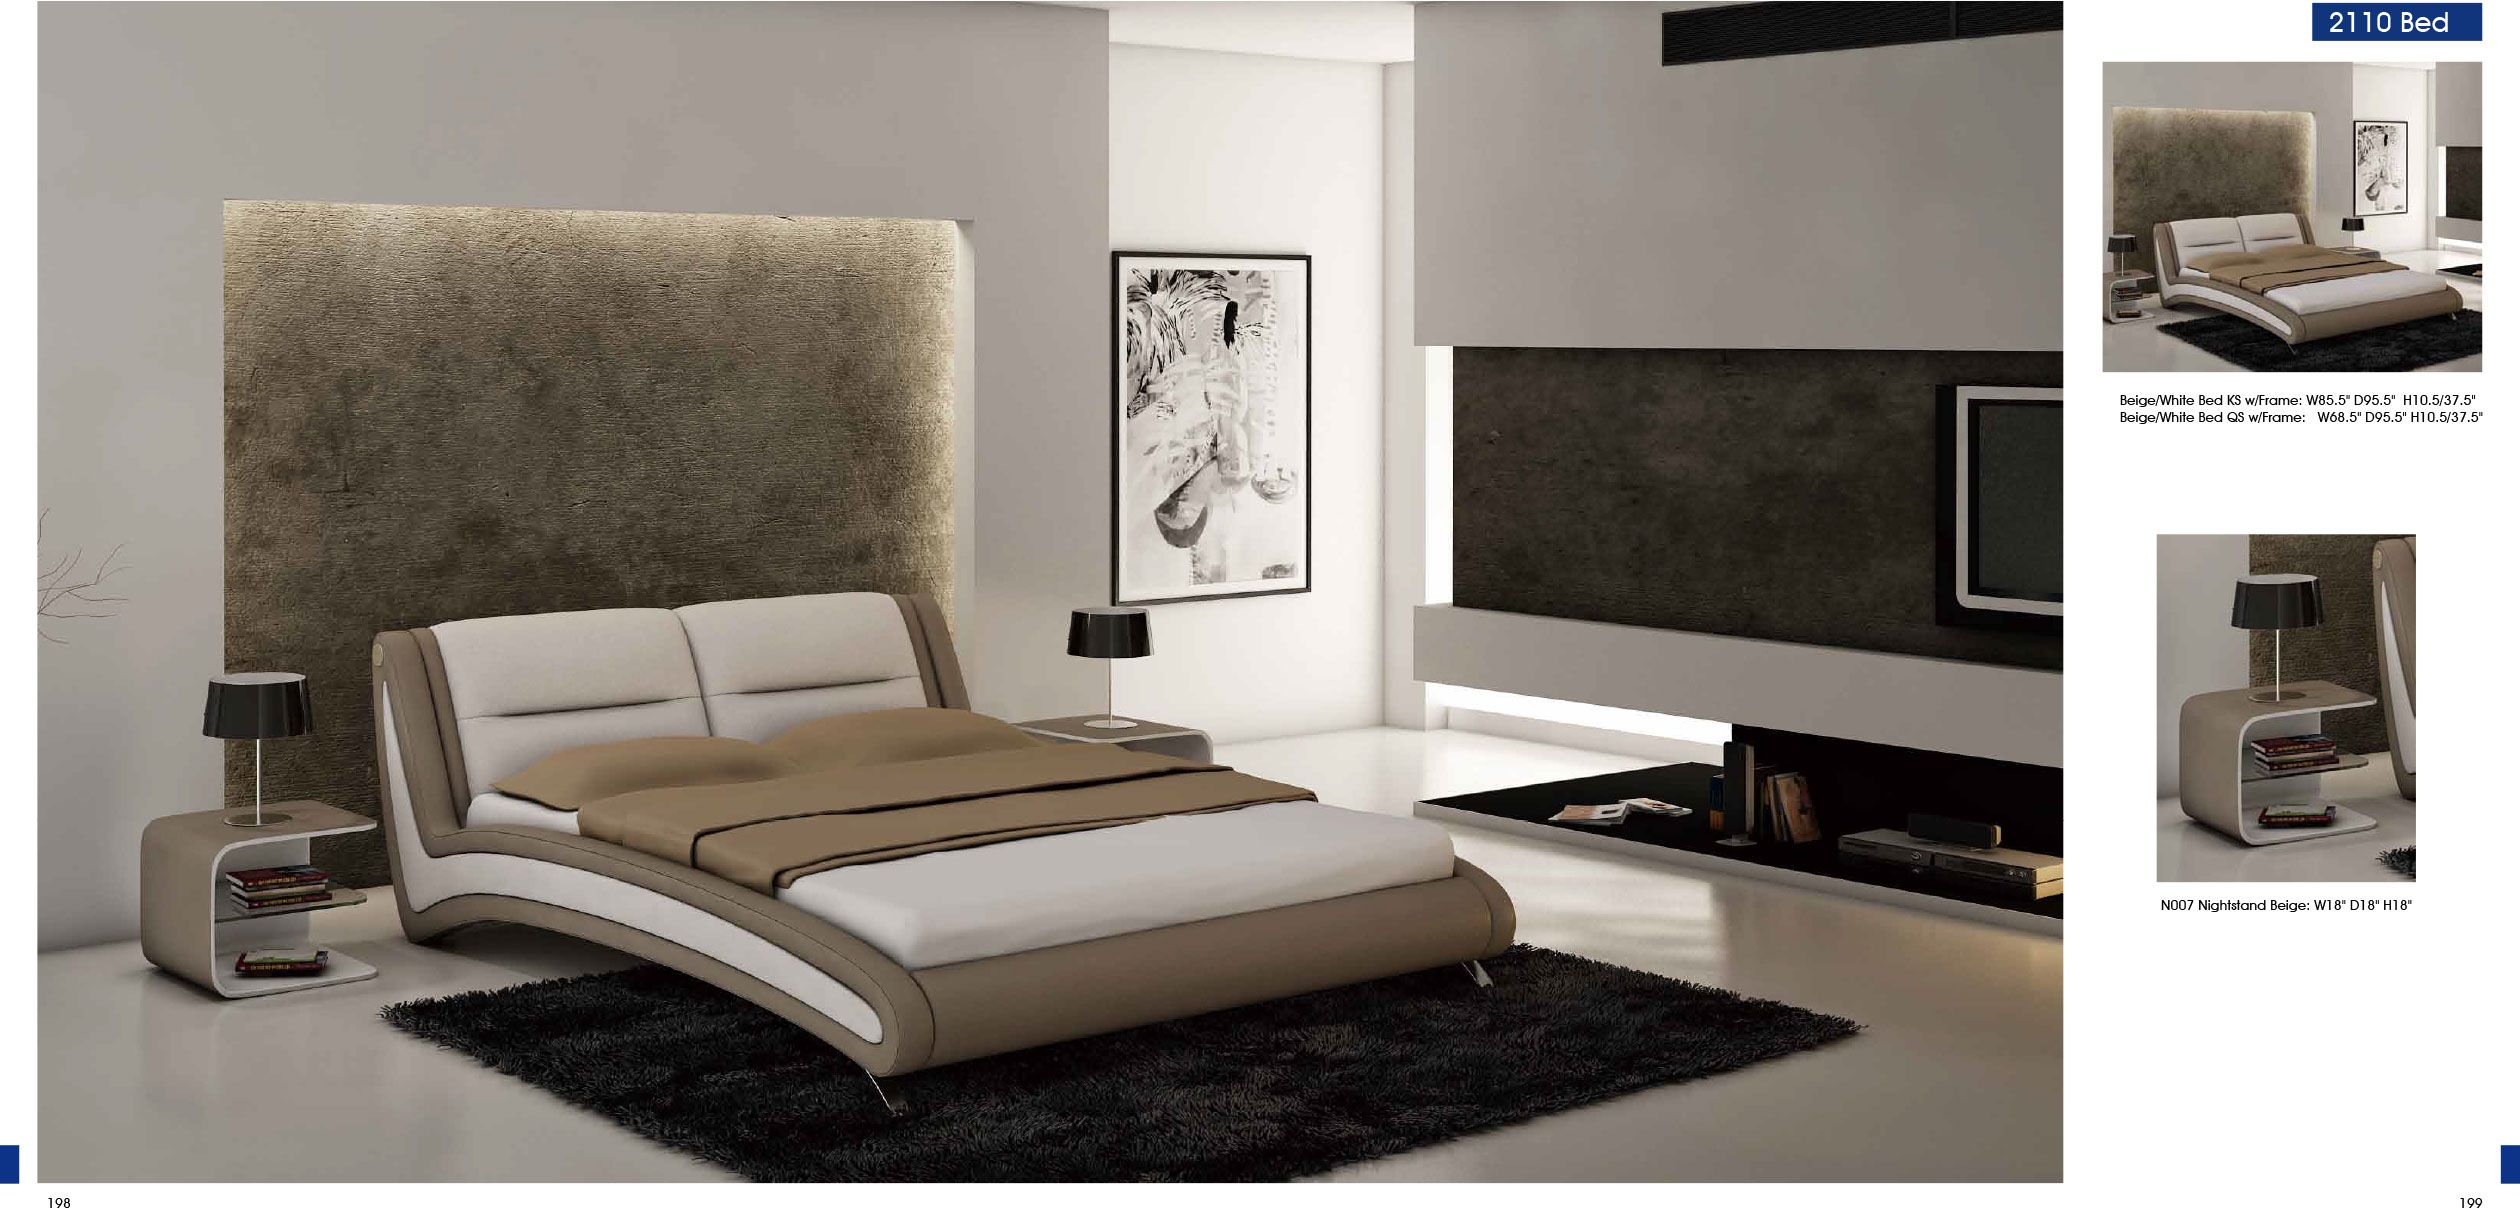 Bedroom furniture bedroom furniture modern bedrooms 2110 for Bed design ideas furniture